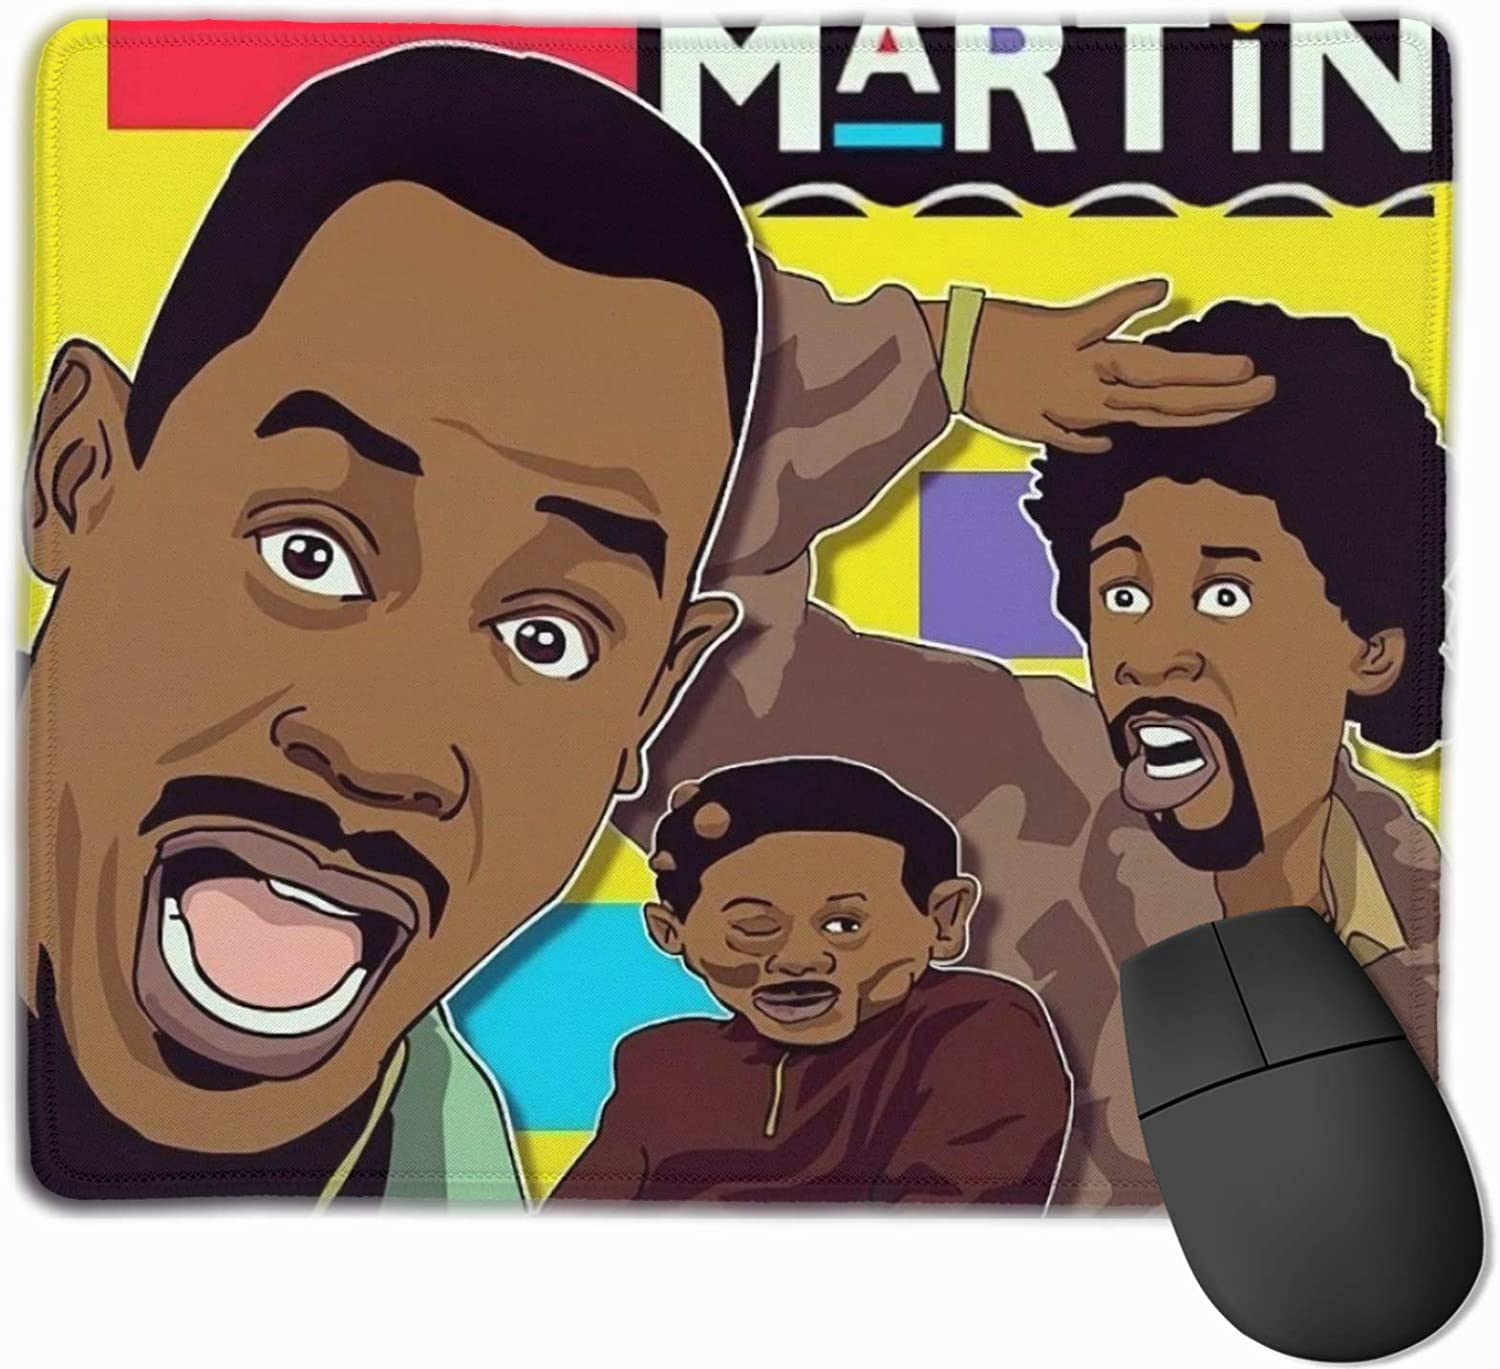 Meikosks Martin Lawrence Mouse Pads Customized Gaming Mousepads for Laptop and Computer Stitched Edges